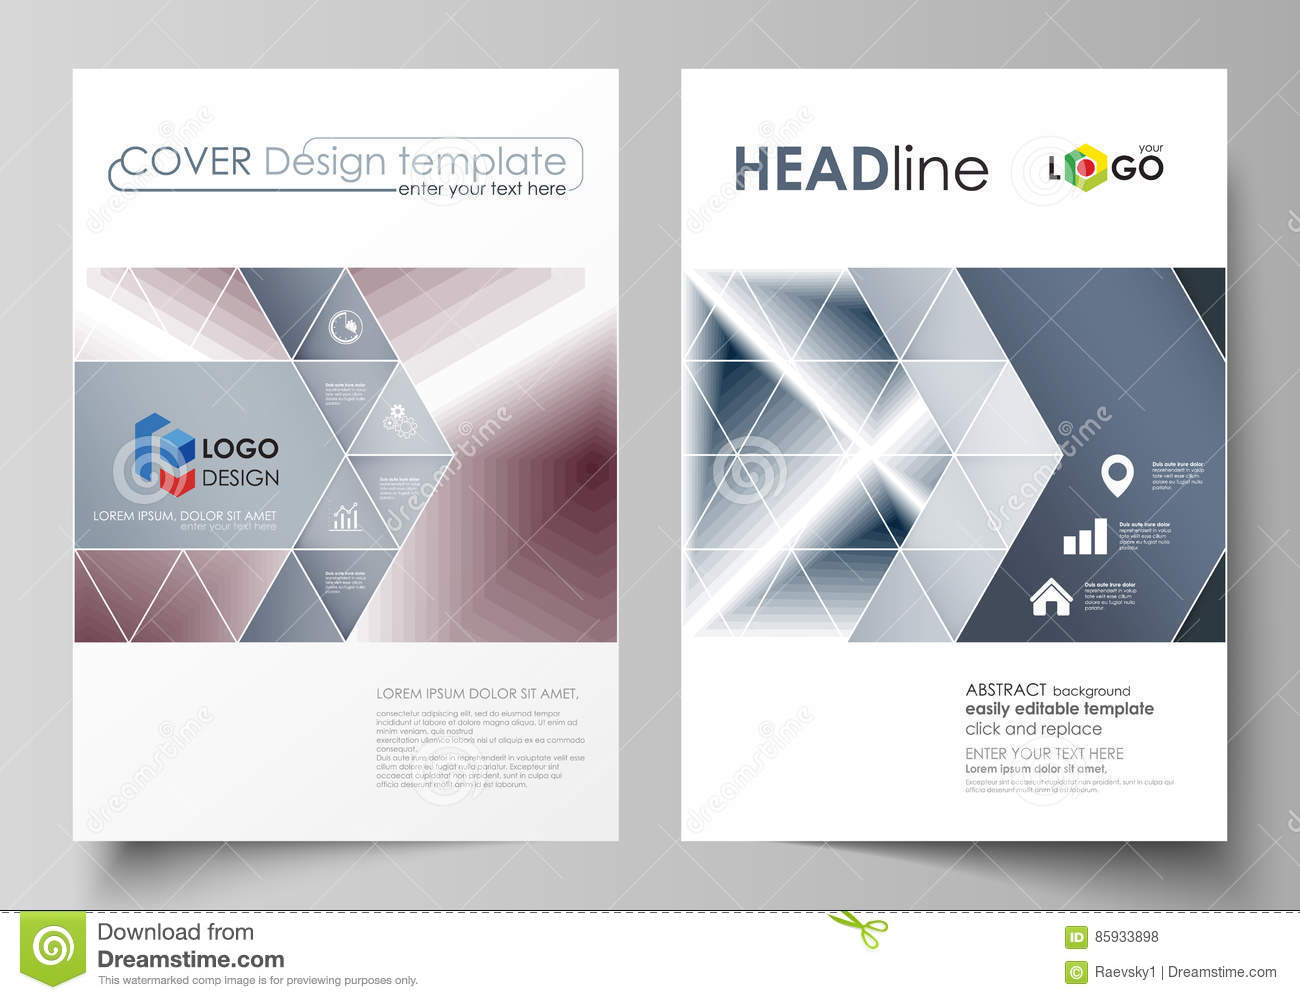 business templates for brochure magazine flyer annual report business templates for brochure magazine flyer annual report cover design template